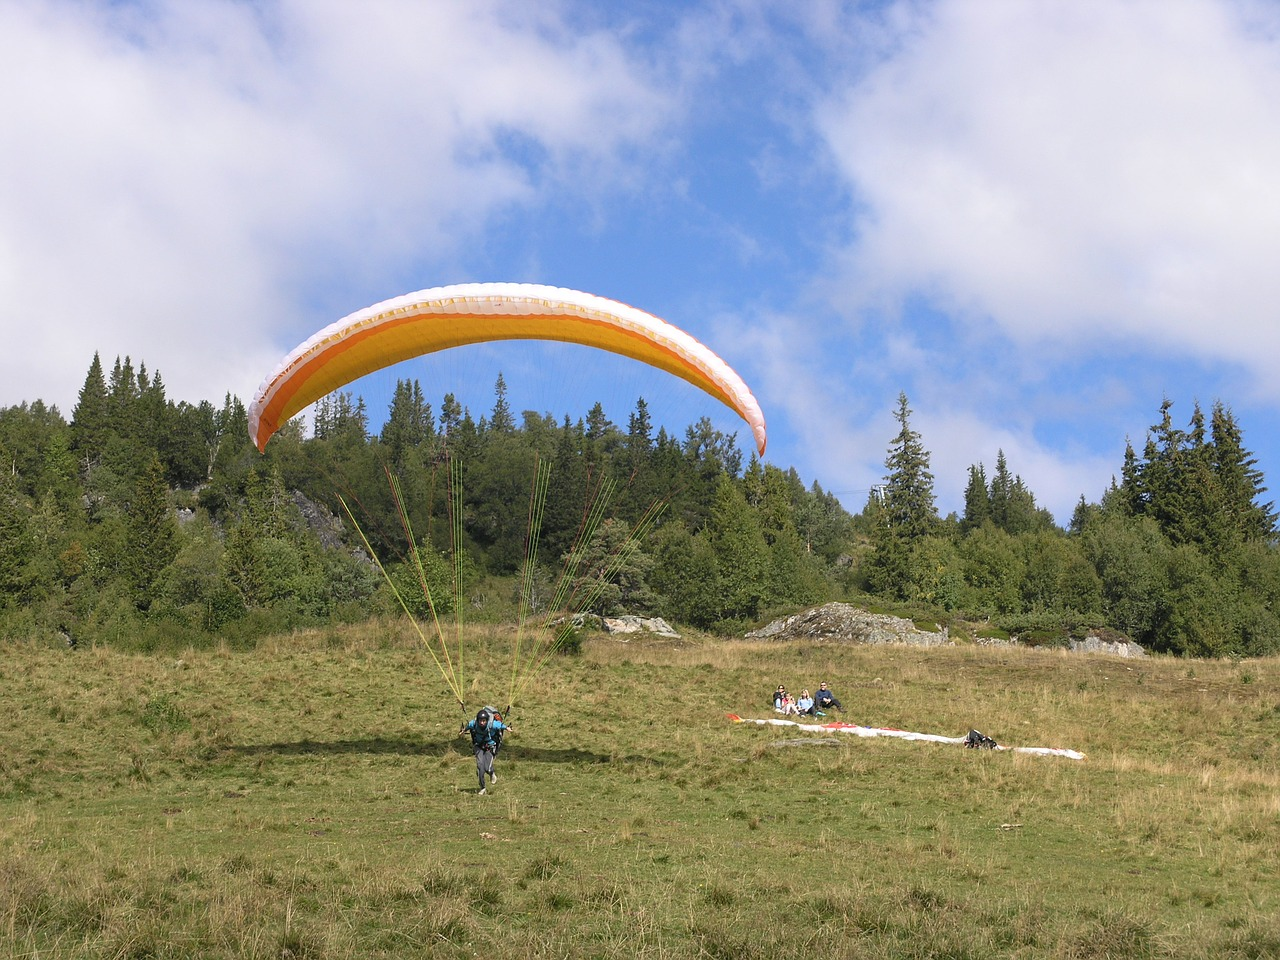 voss hang gliding sport free photo